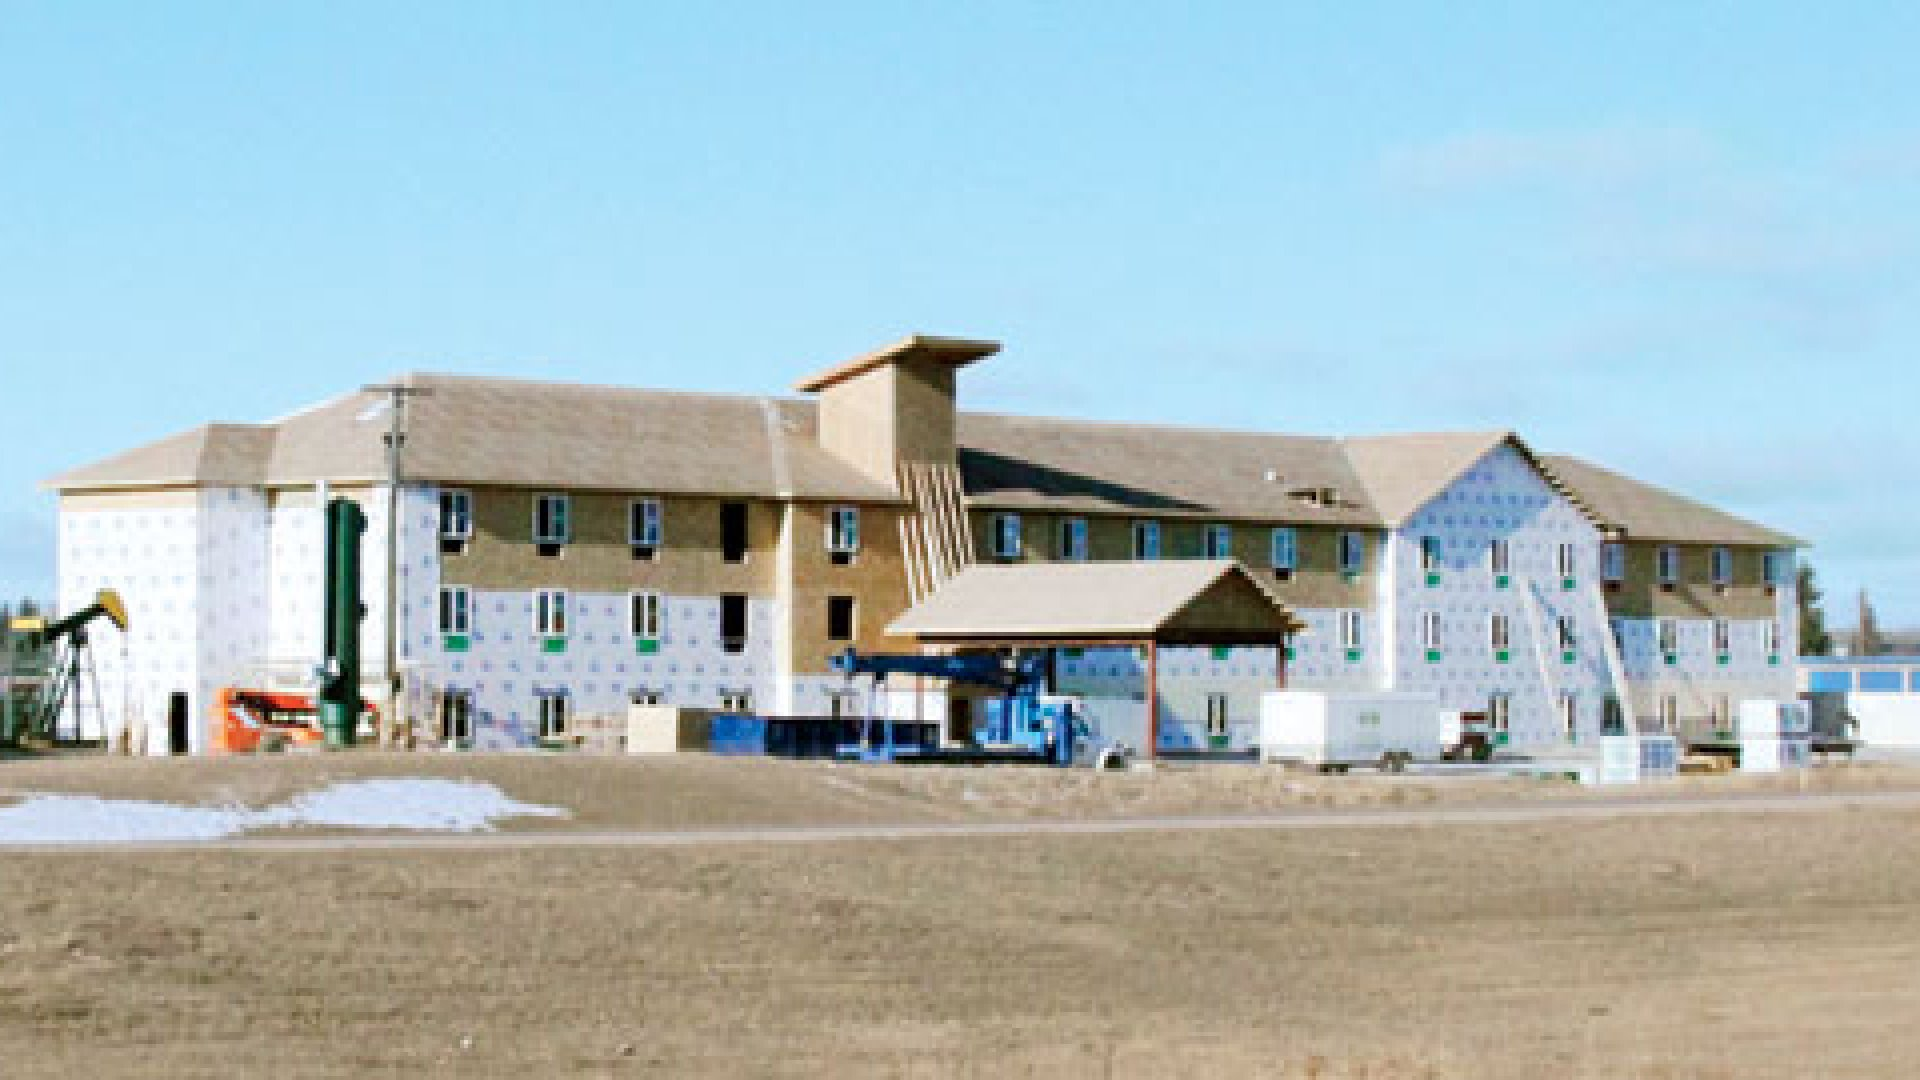 <b>Welcome to the Hotel Brodsky</b> In March, about 100 oilcompany workers in northern North Dakota will call this place home.